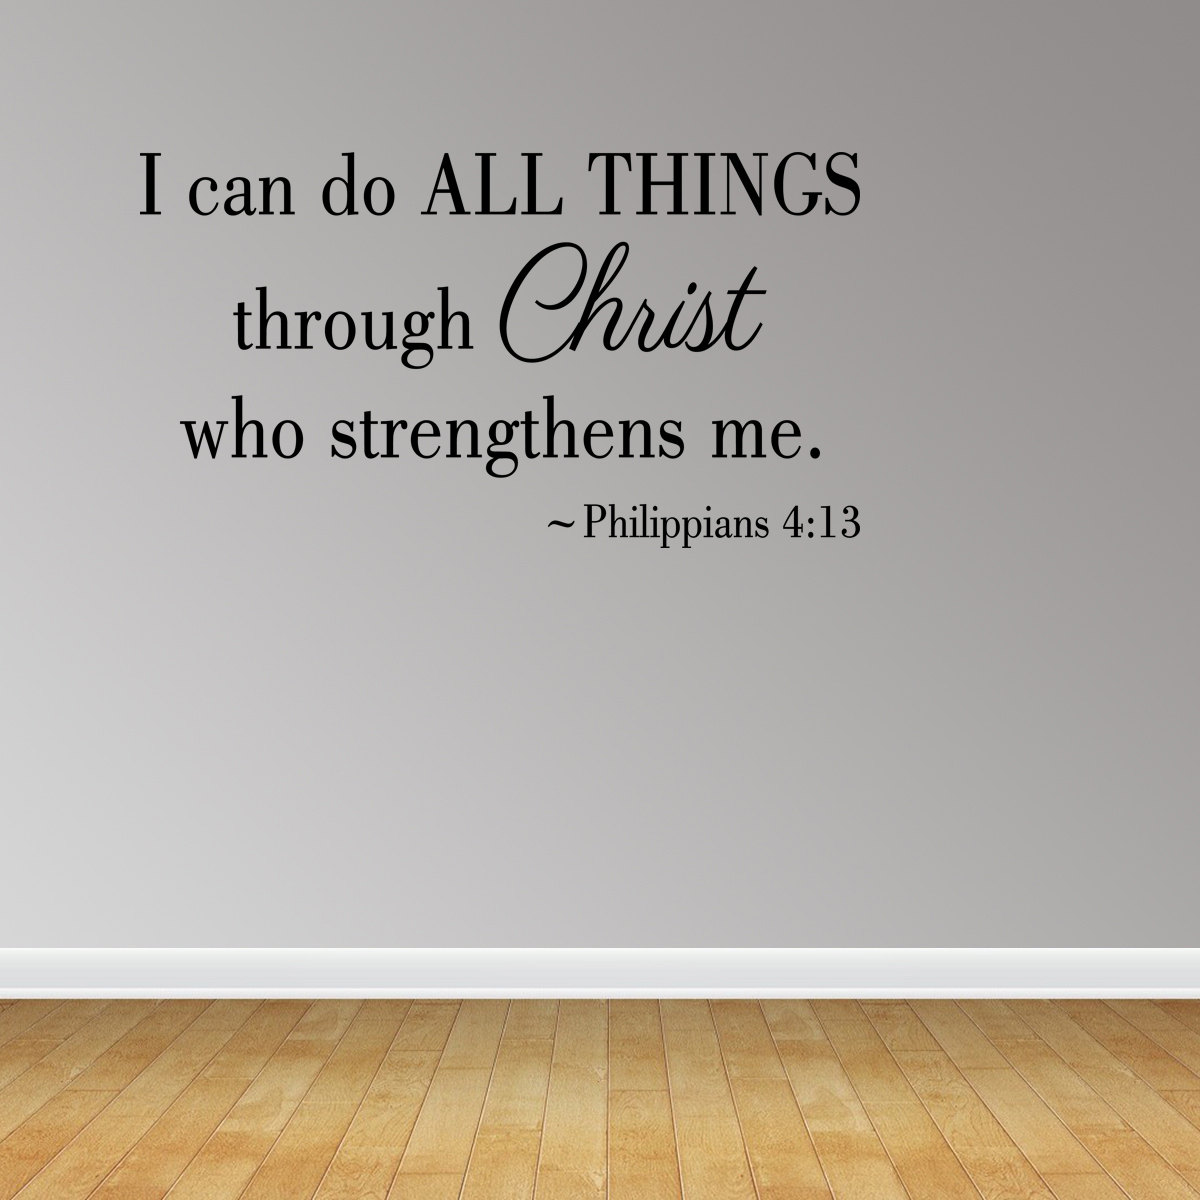 I Can Do All Things Through Christ Philippians 4:13 Vinyl Wall Decal JR486